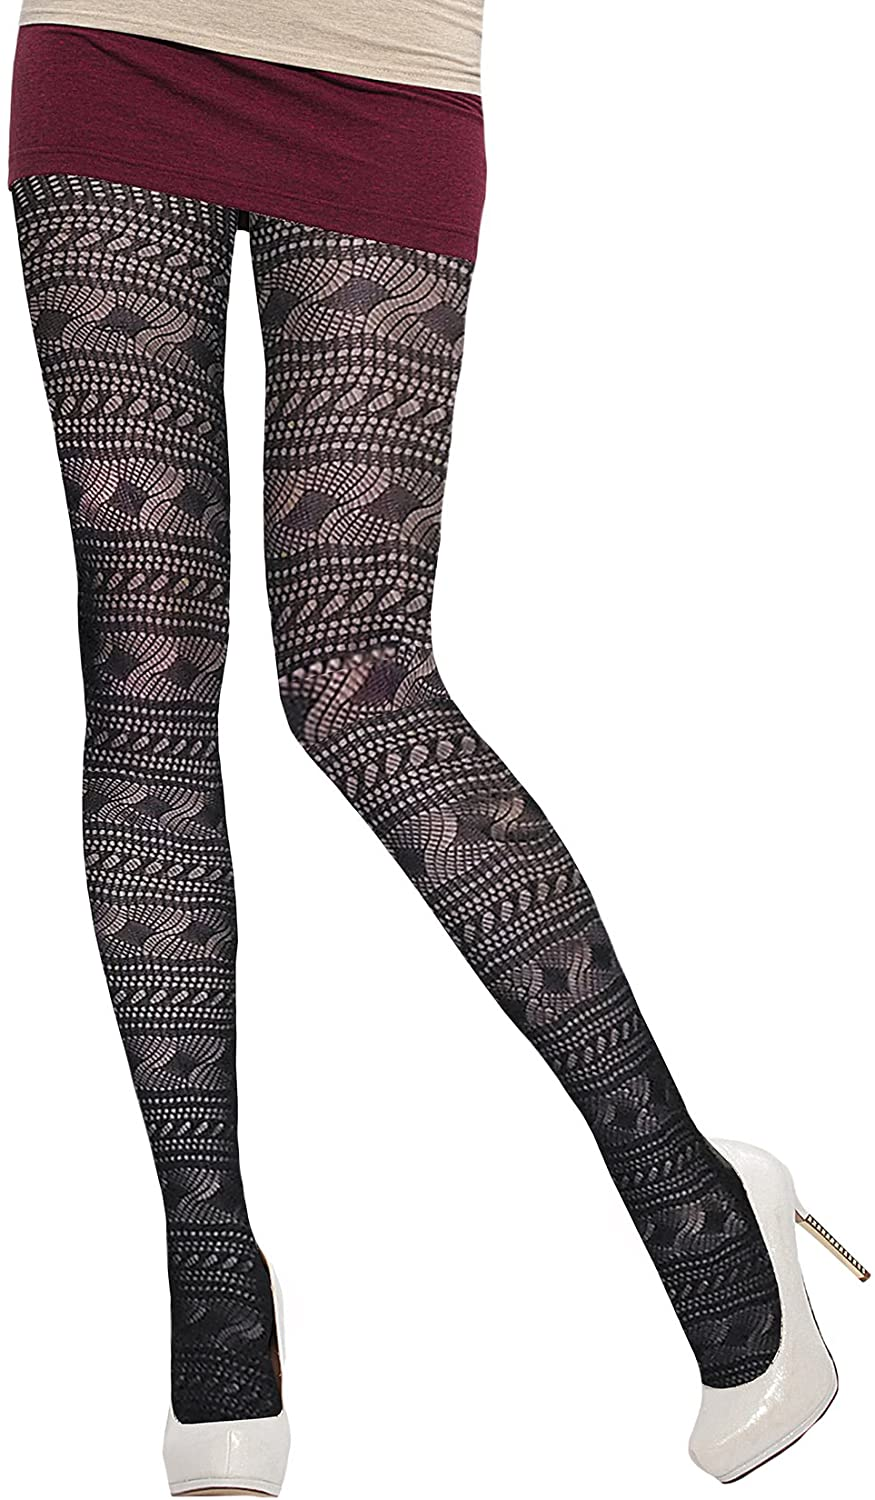 Jacquared Tights Inspiration for Women by Knittex